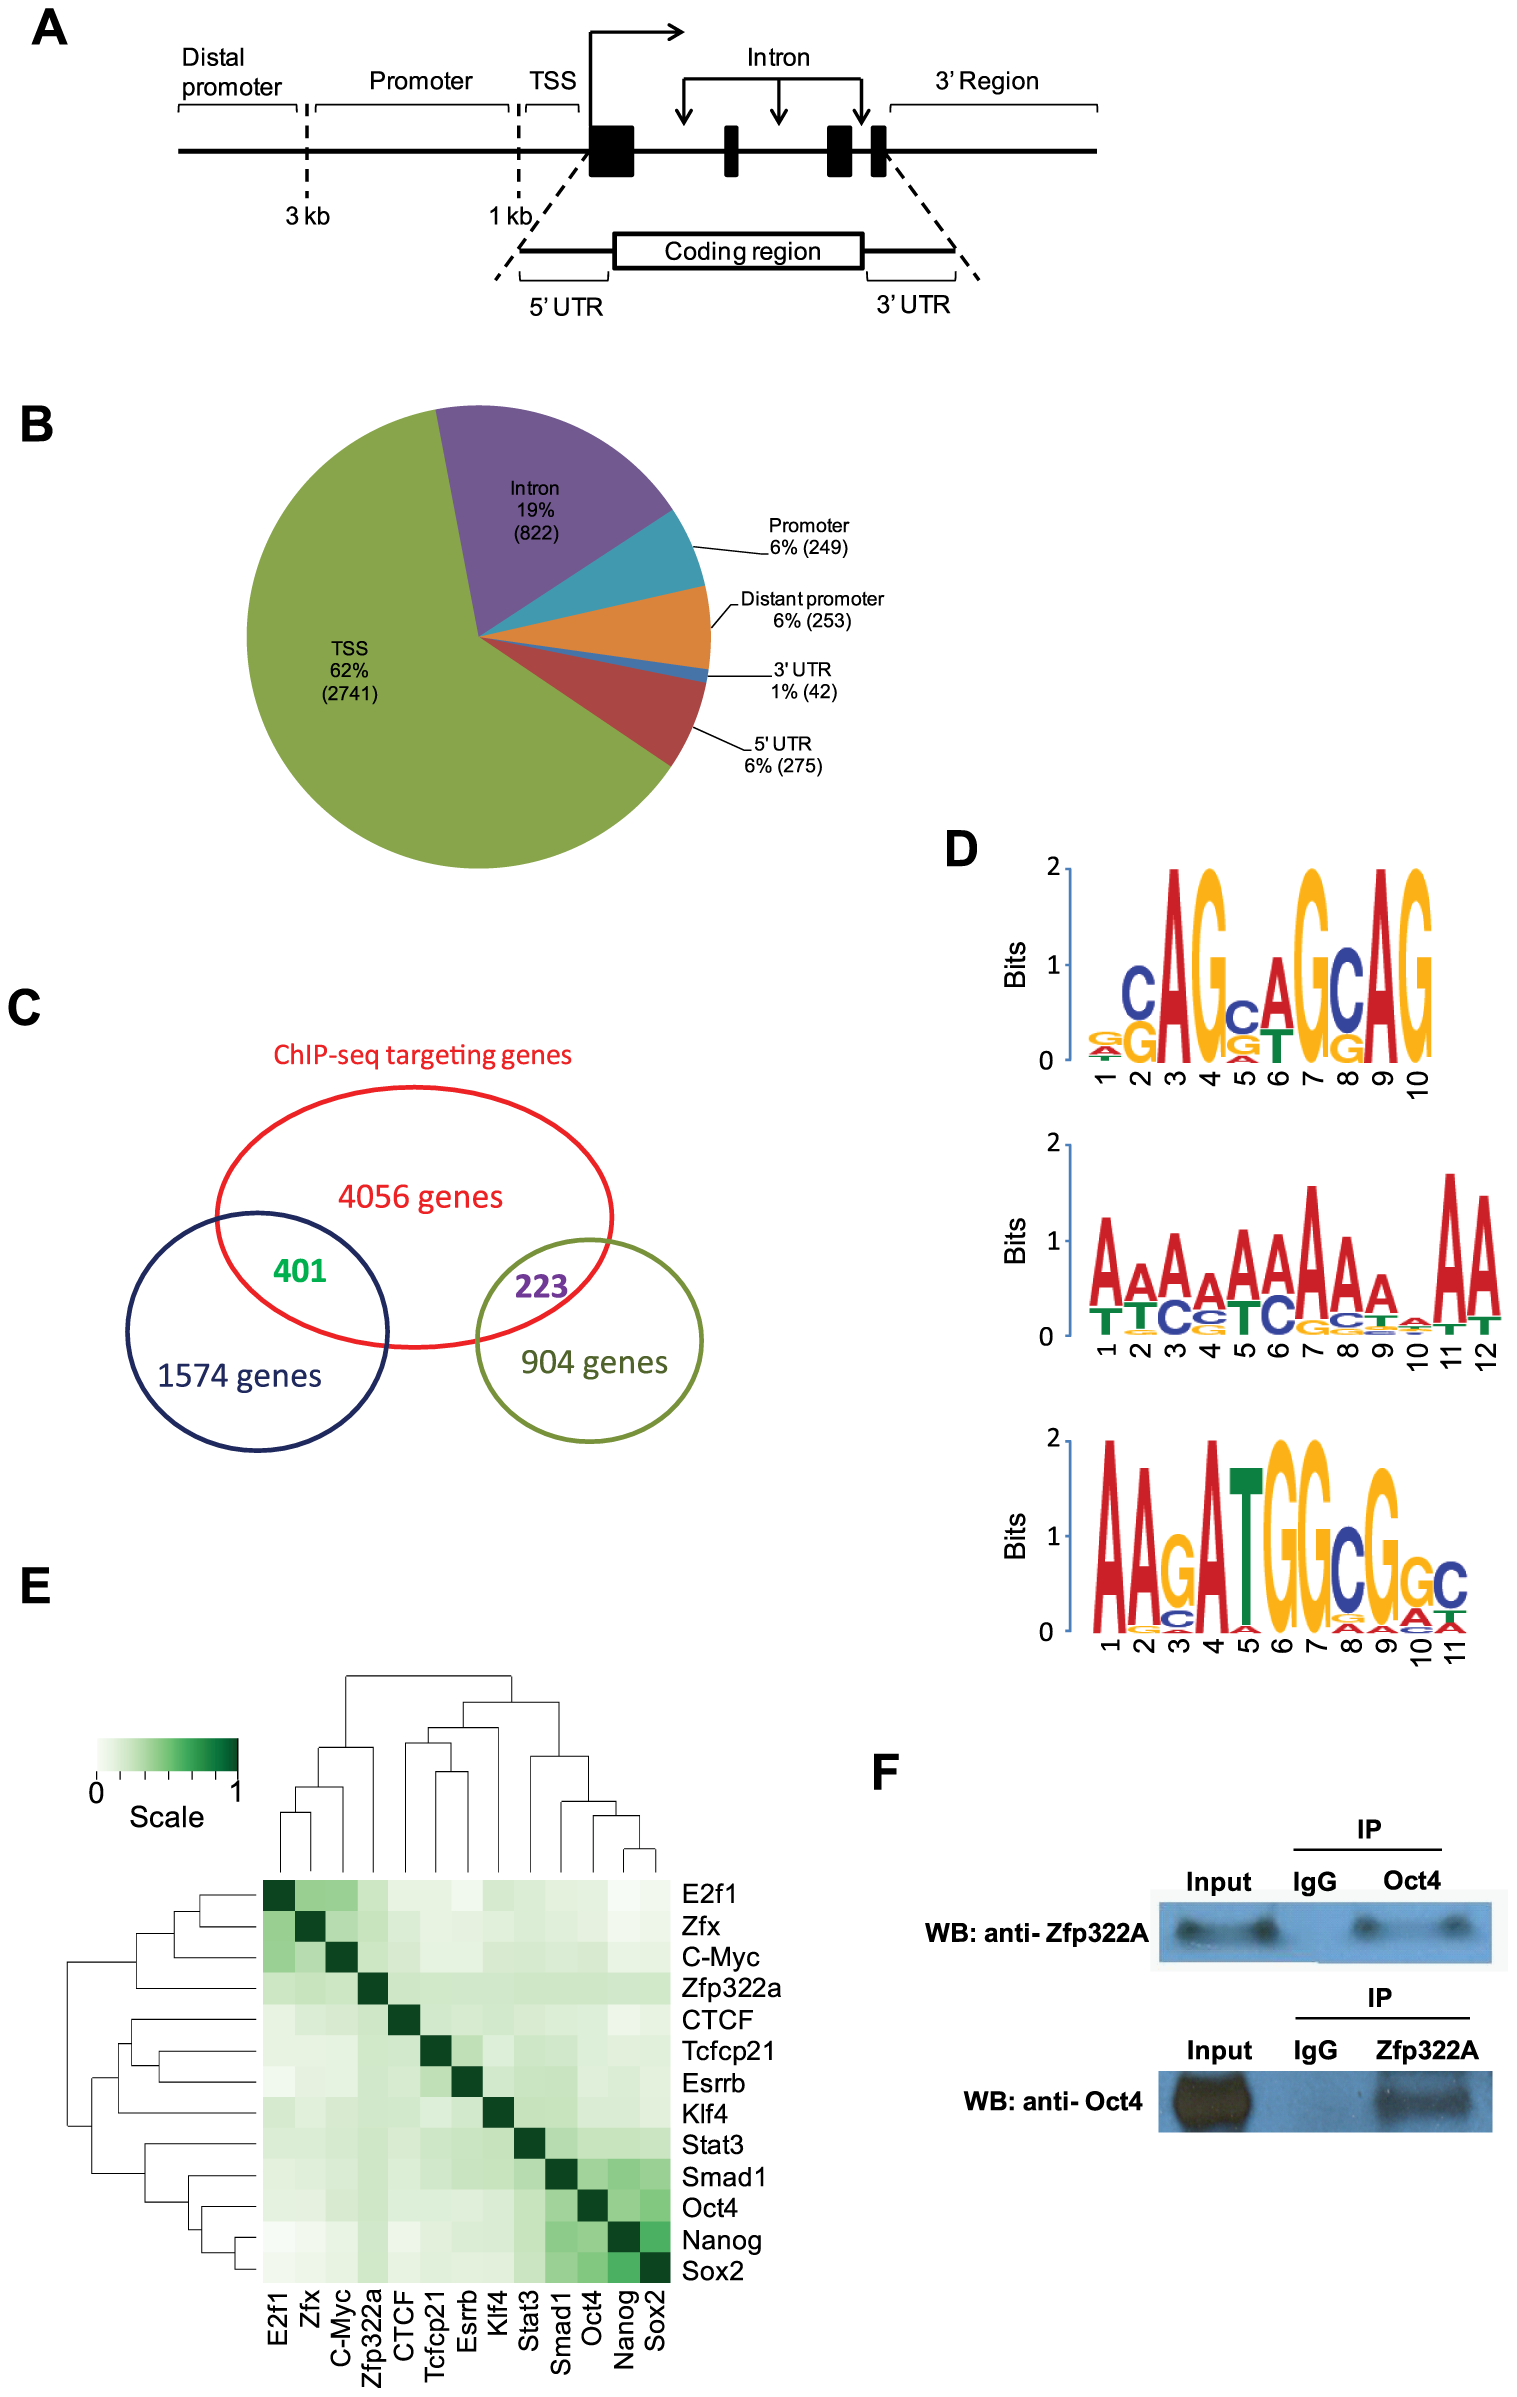 Genomic-wide analysis of Zfp322a binding sites.